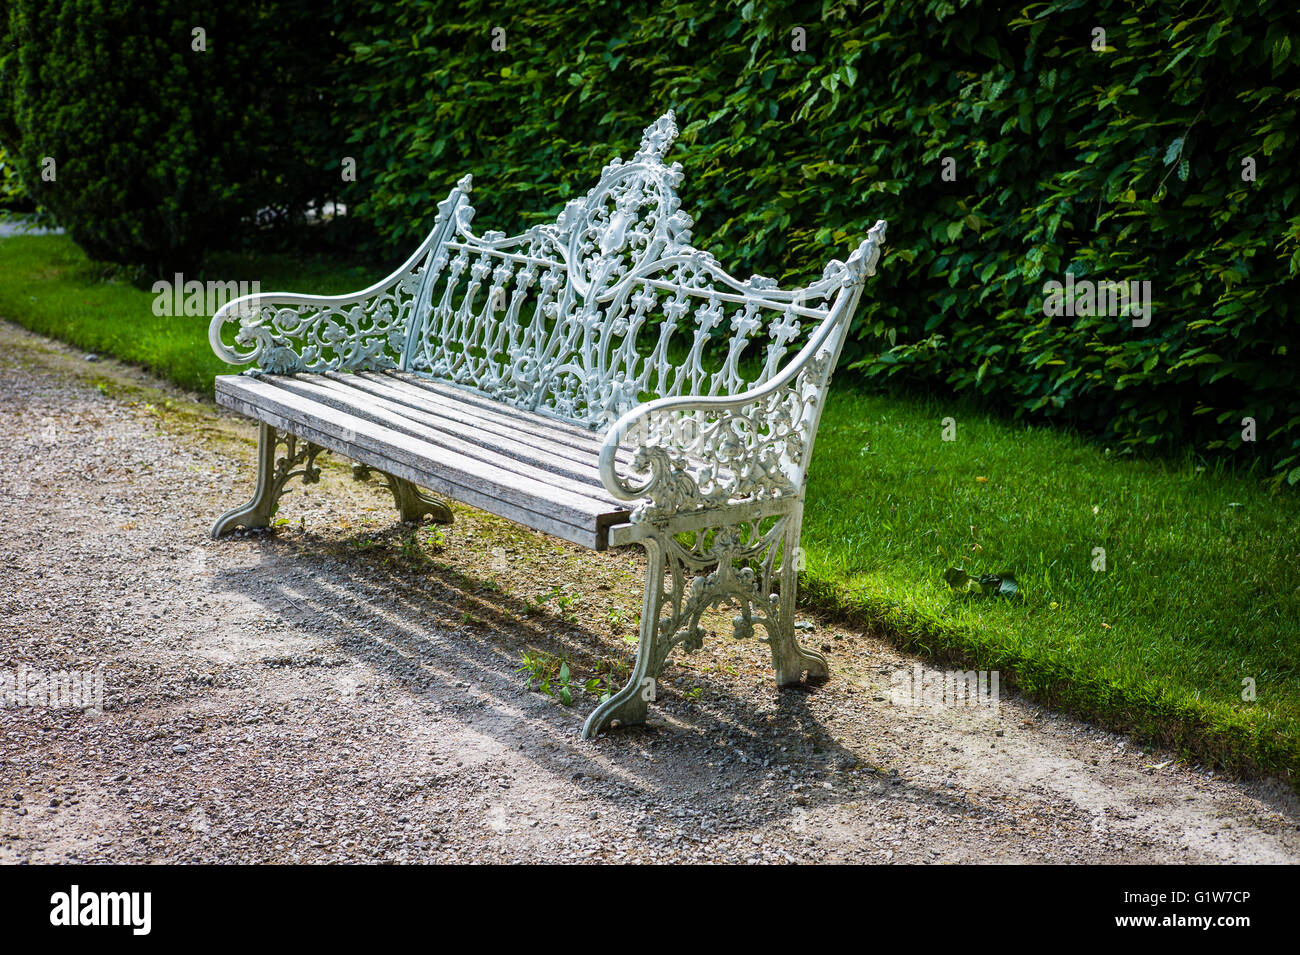 Old cast iron bench seat in garden open to the public in Cumbria UK - Stock Image